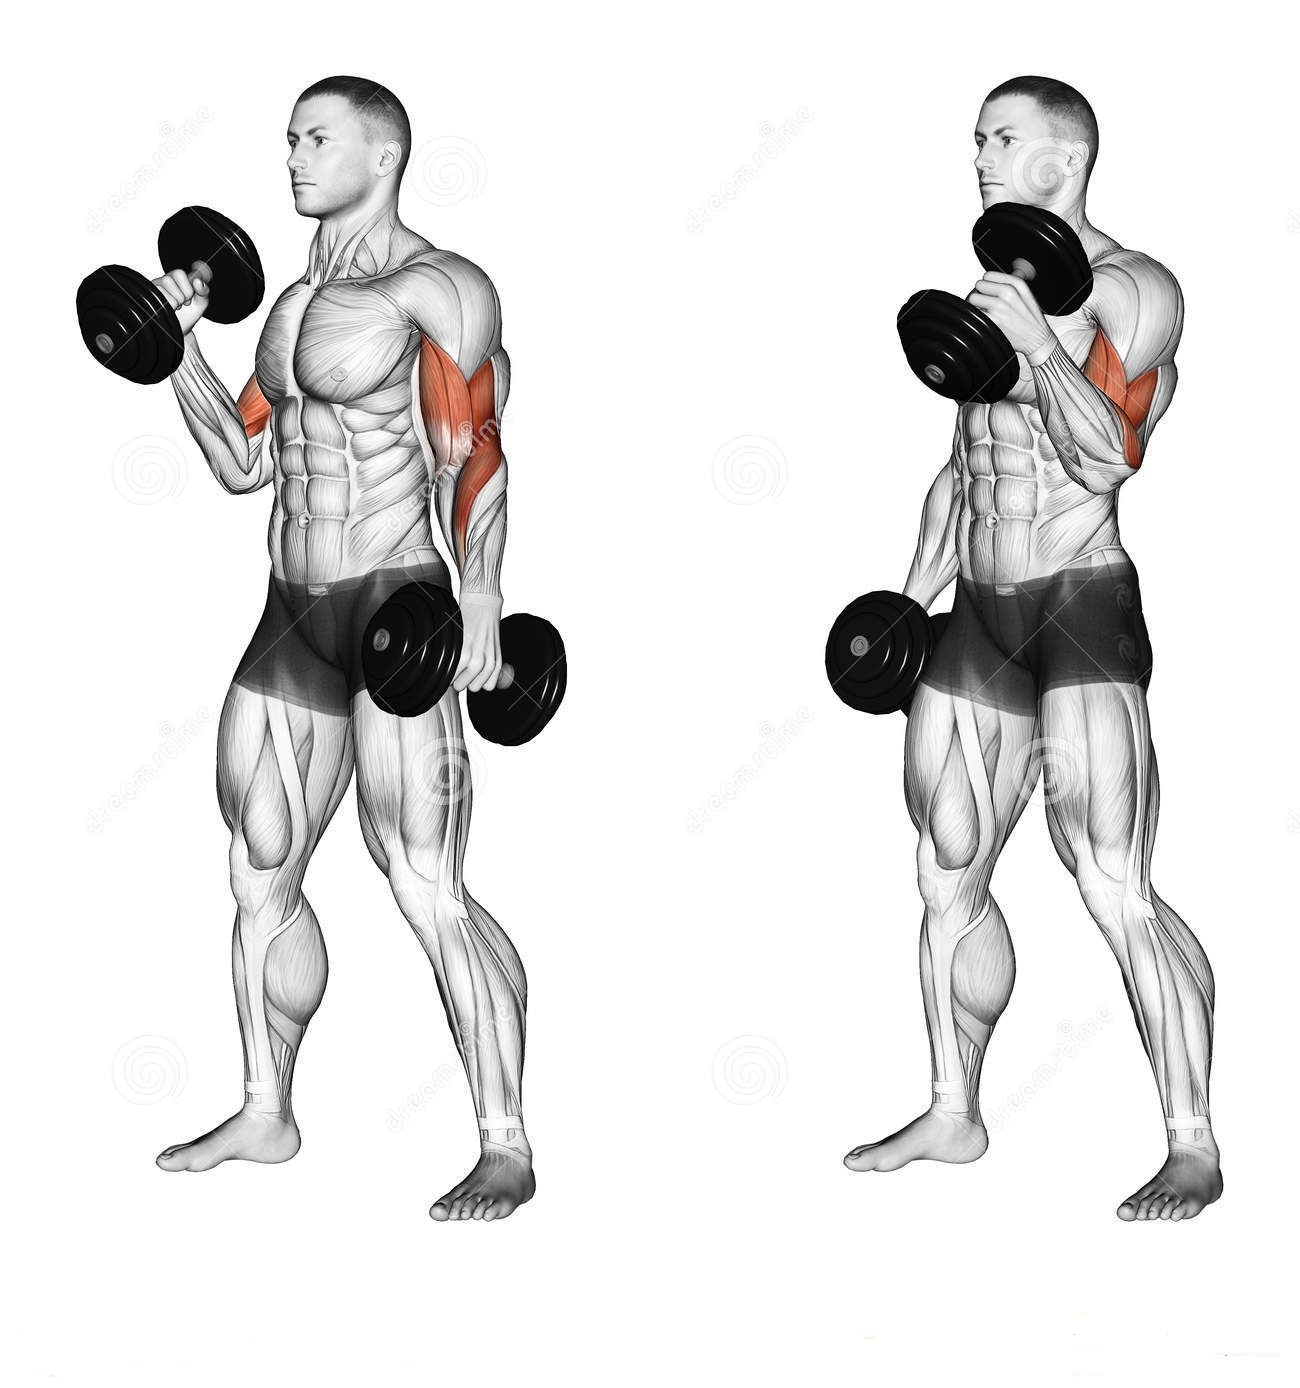 Bodybuilder Workouts To Build The Biceps And Triceps